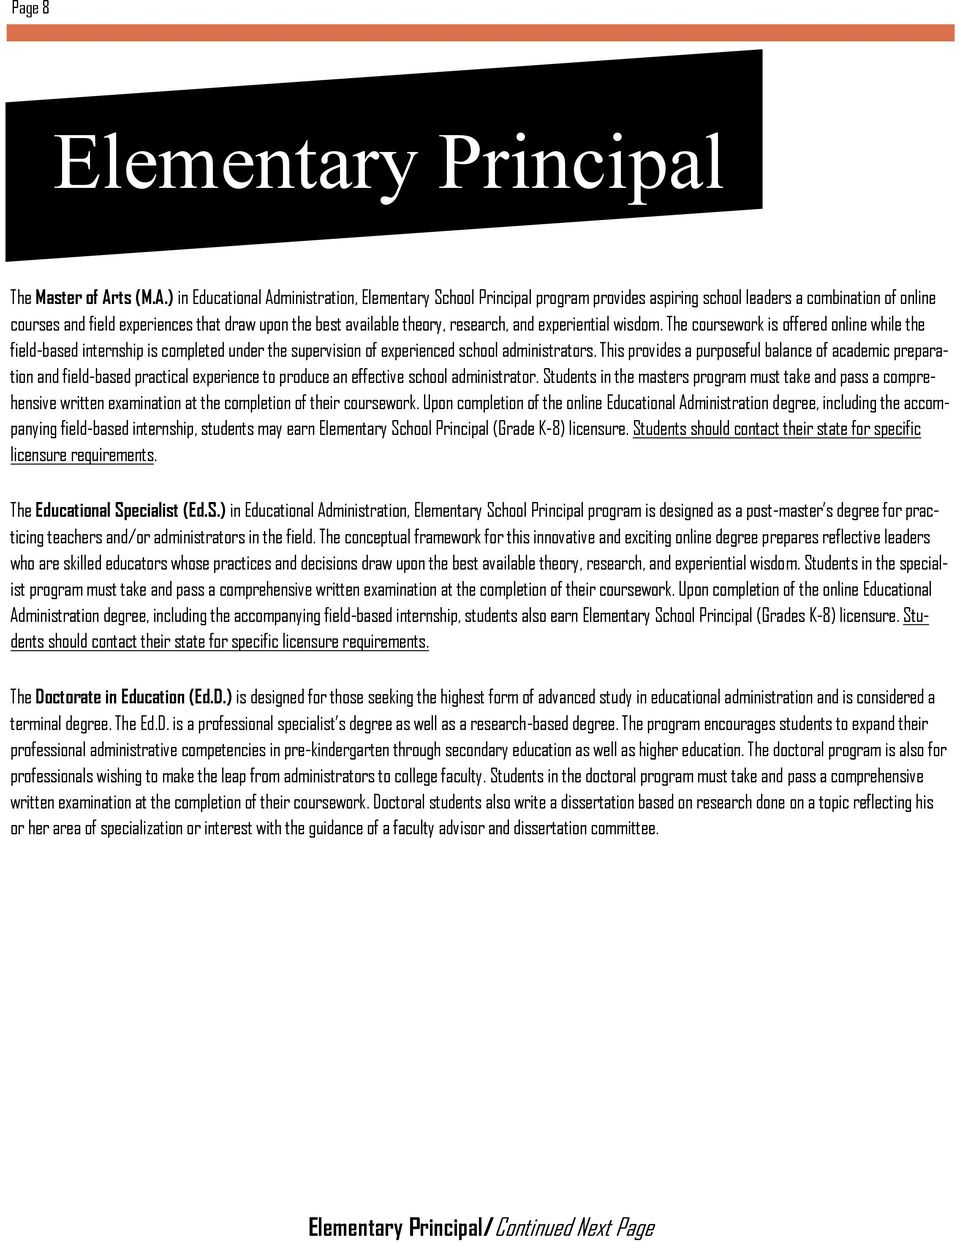 ) in Educational Administration, Elementary School Principal program provides aspiring school leaders a combination of online courses and field experiences that draw upon the best available theory,